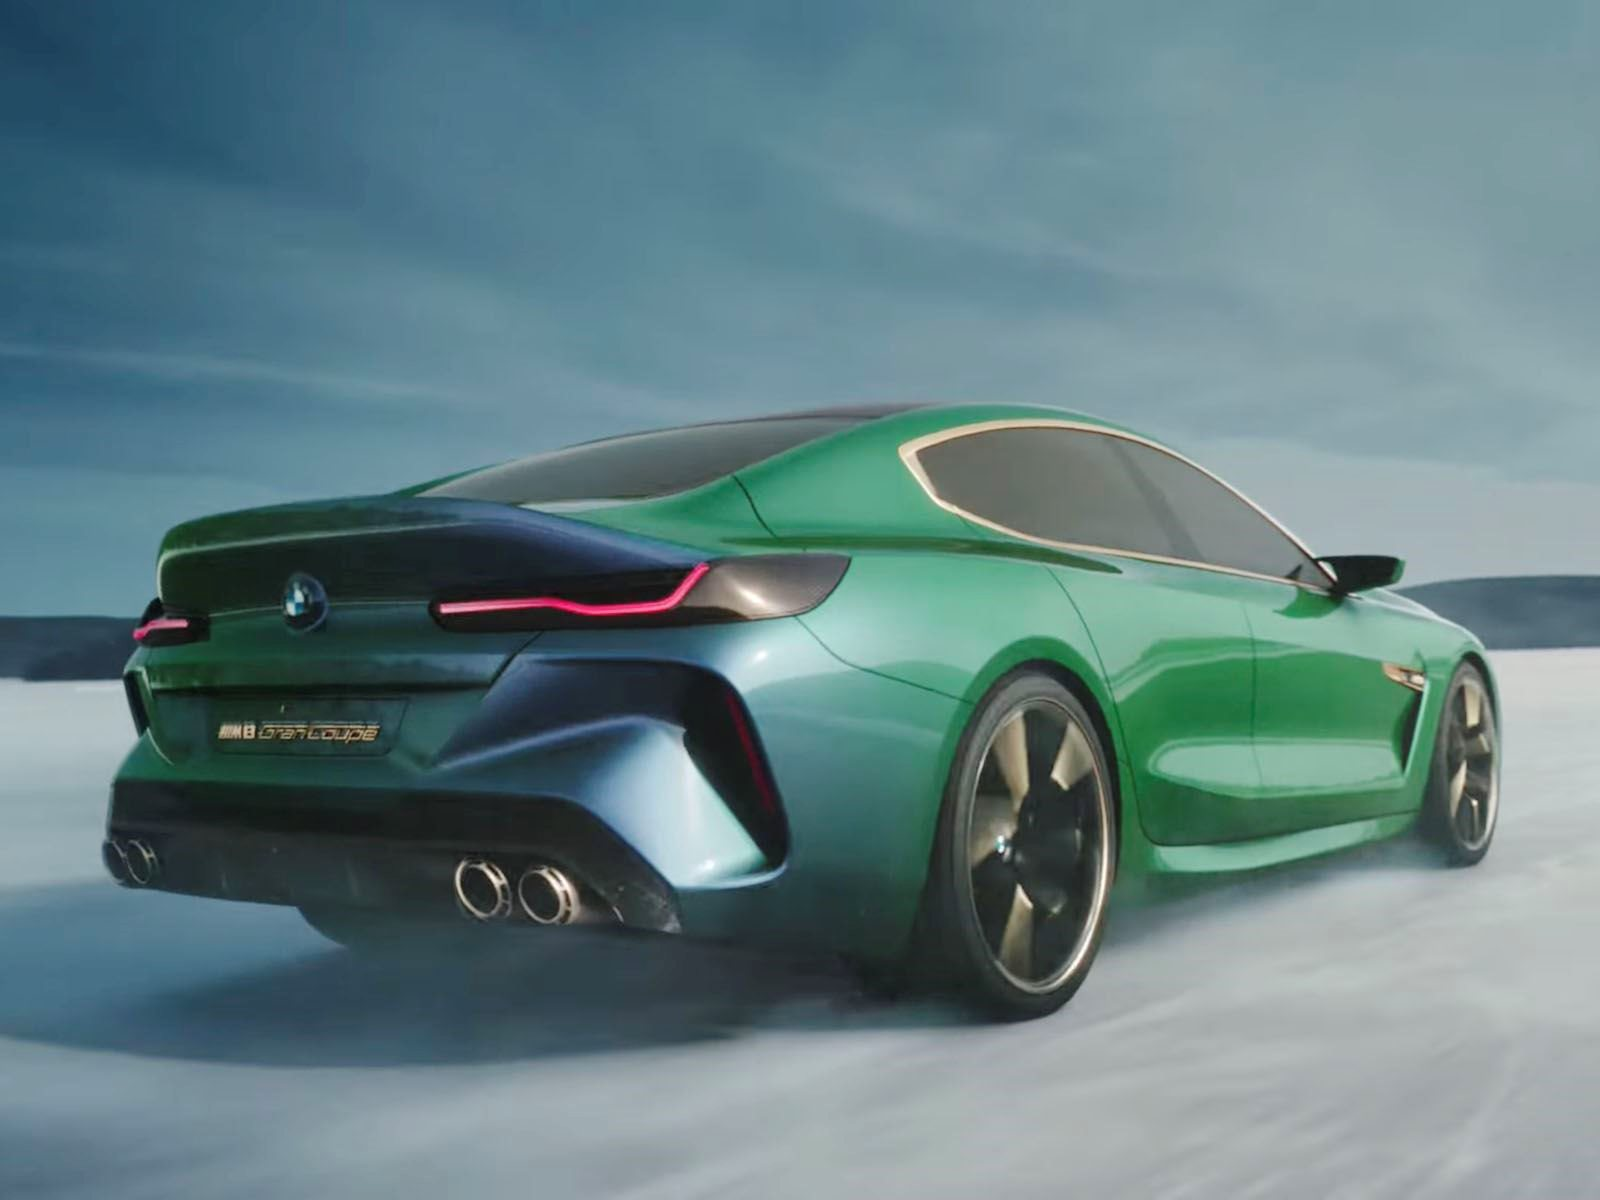 BMW M8 Gran Coupe Concept Looks Even Better In Action - CarBuzz